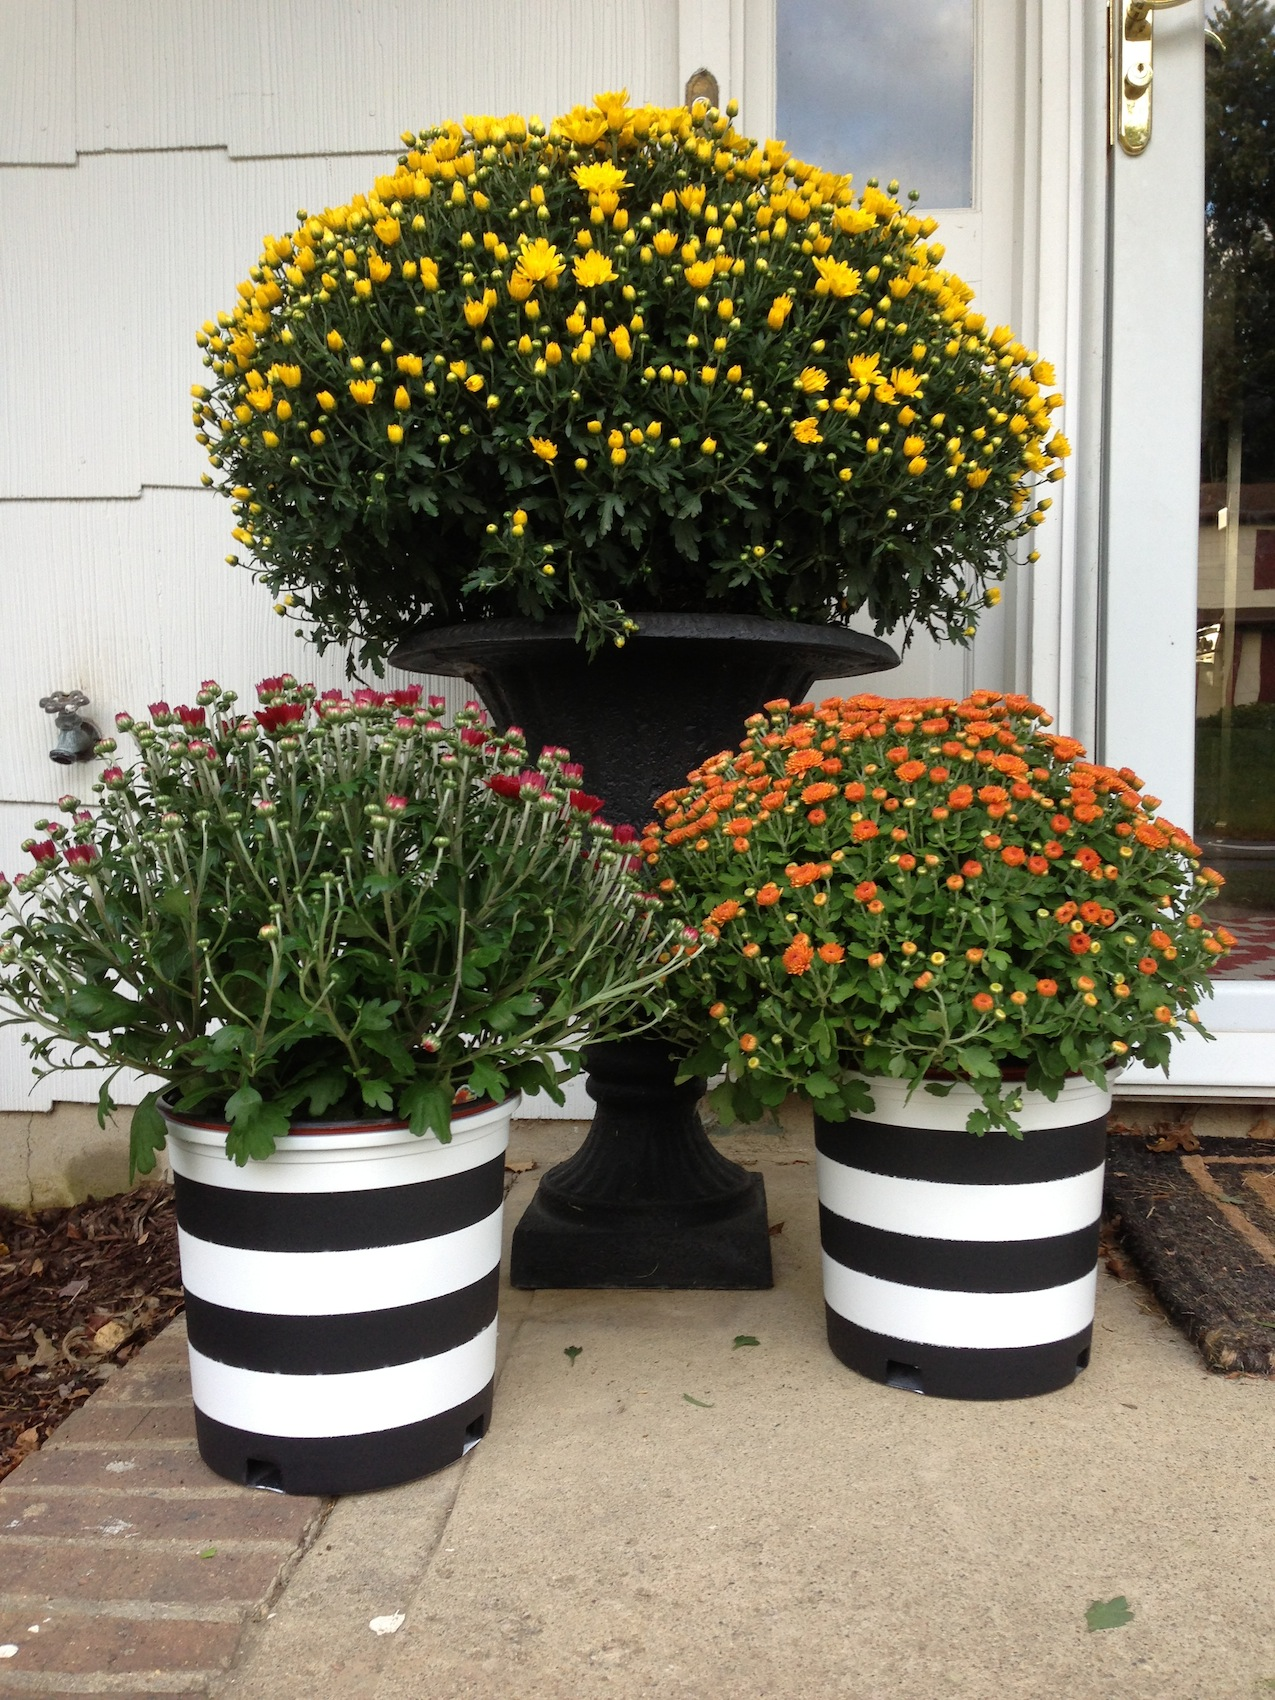 Diy Black And White Striped Planters Rhiannons Interiors